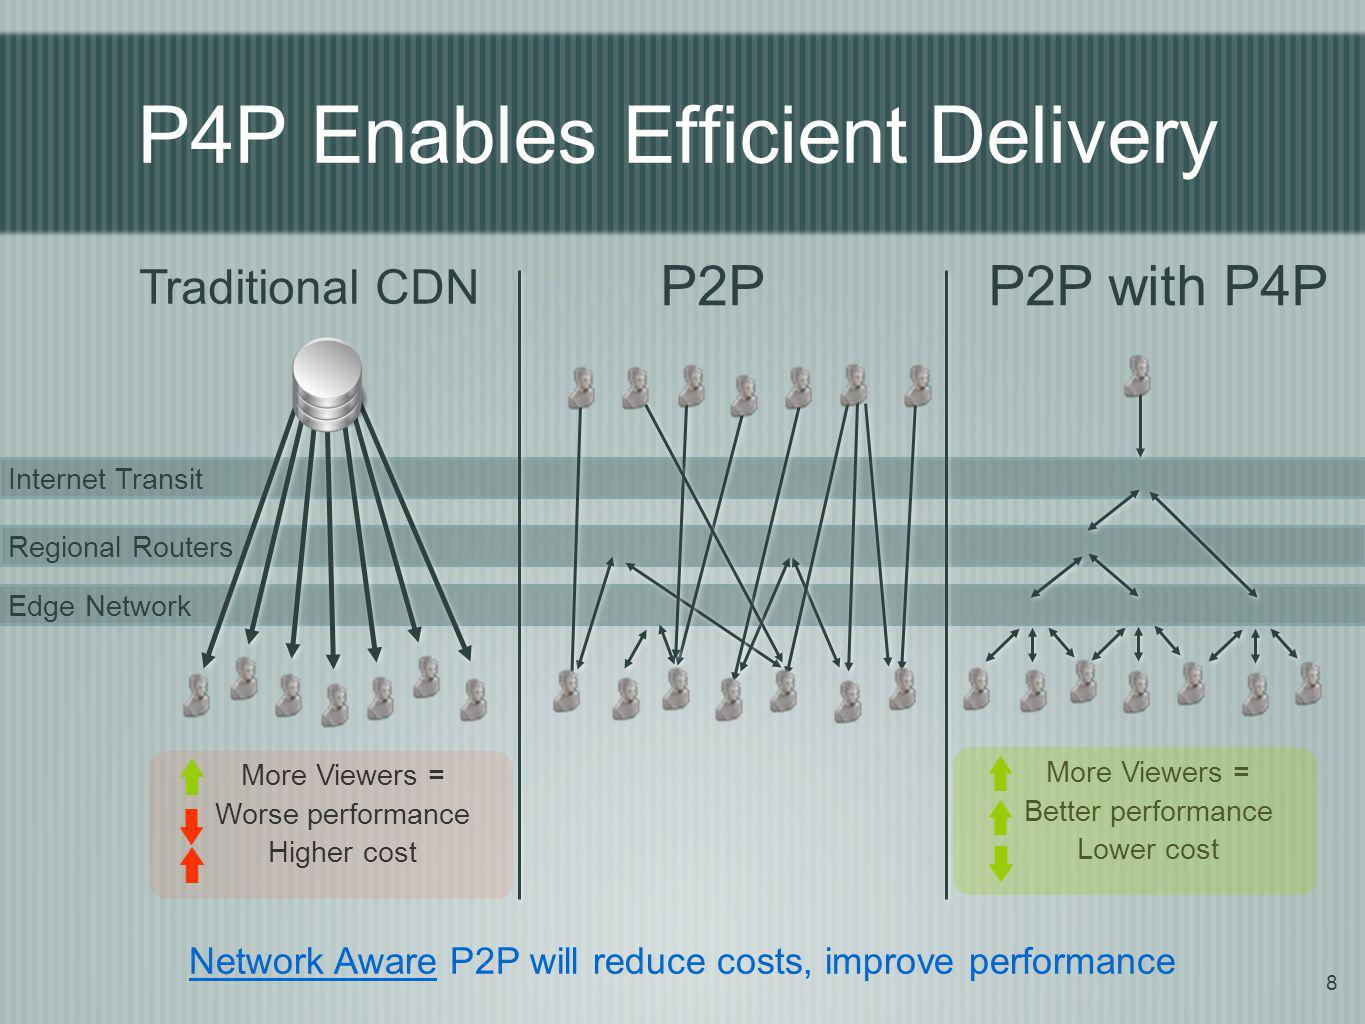 8 Edge Network Regional Routers Internet Transit Network Aware P2P will reduce costs, improve performance Traditional CDN P2P More Viewers = Better performance Lower cost More Viewers = Worse performance Higher cost P4P Enables Efficient Delivery P2P with P4P